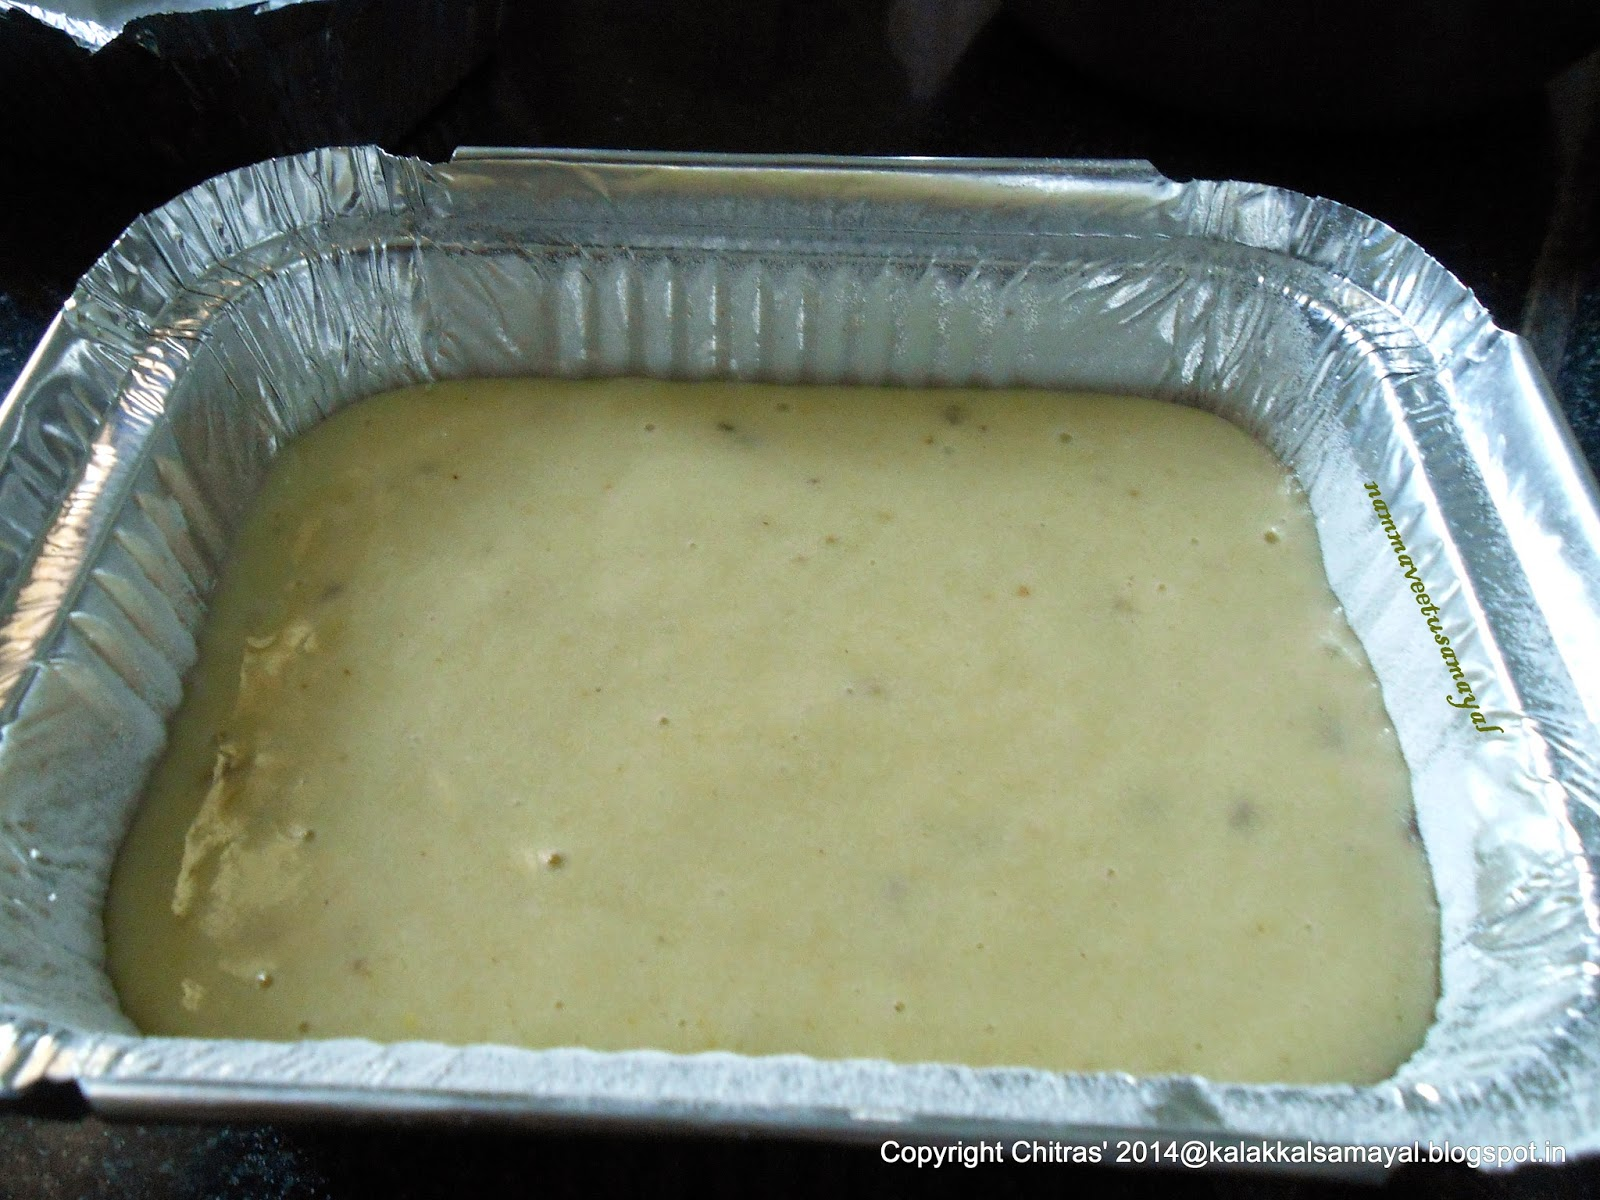 Fill 3/4 th of aluminium casserole with batter